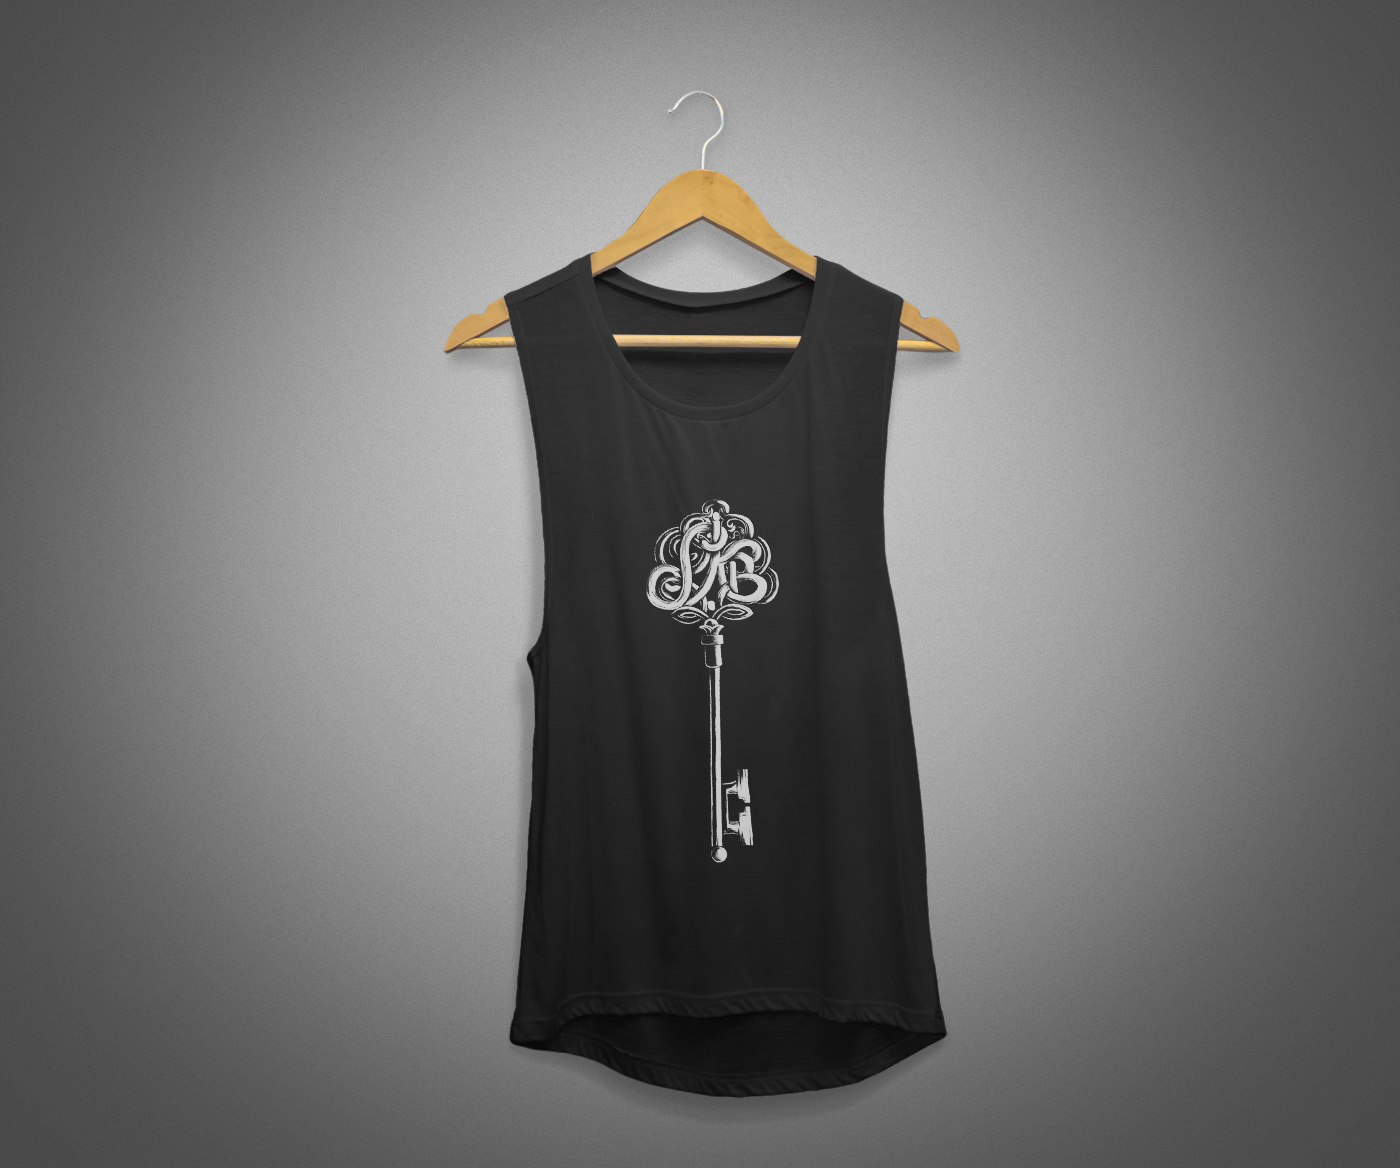 skeleton-key-brewery-merchandise-graphic-tanktop-with-key